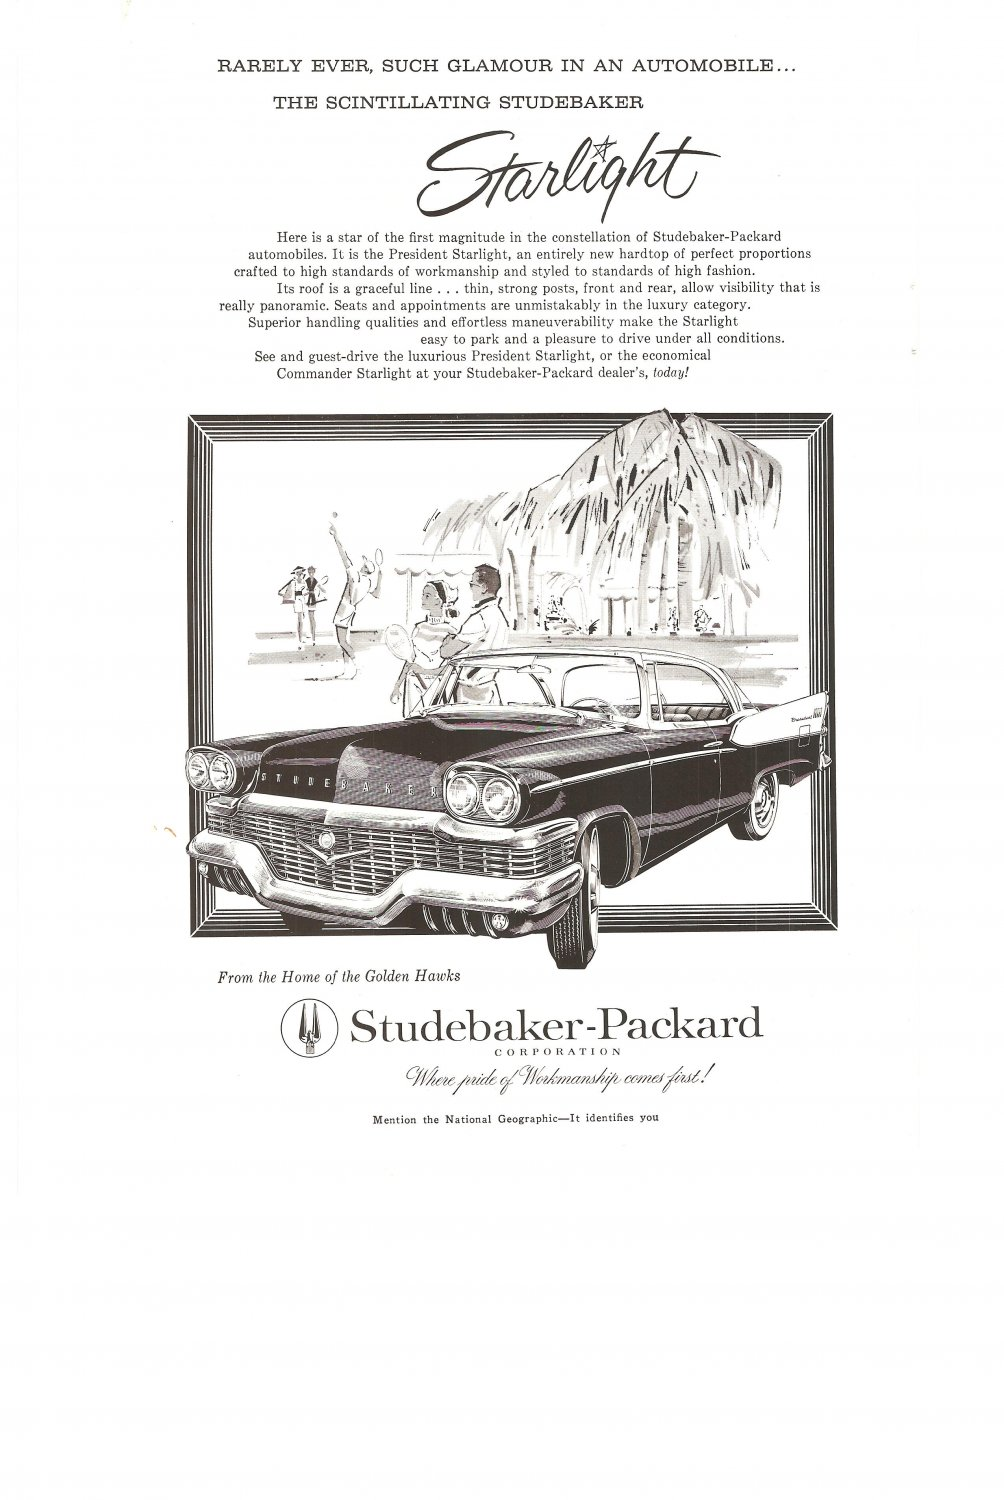 Vintage Ad Studebaker Packard Starlight 1958 Home of the Golden Hawks